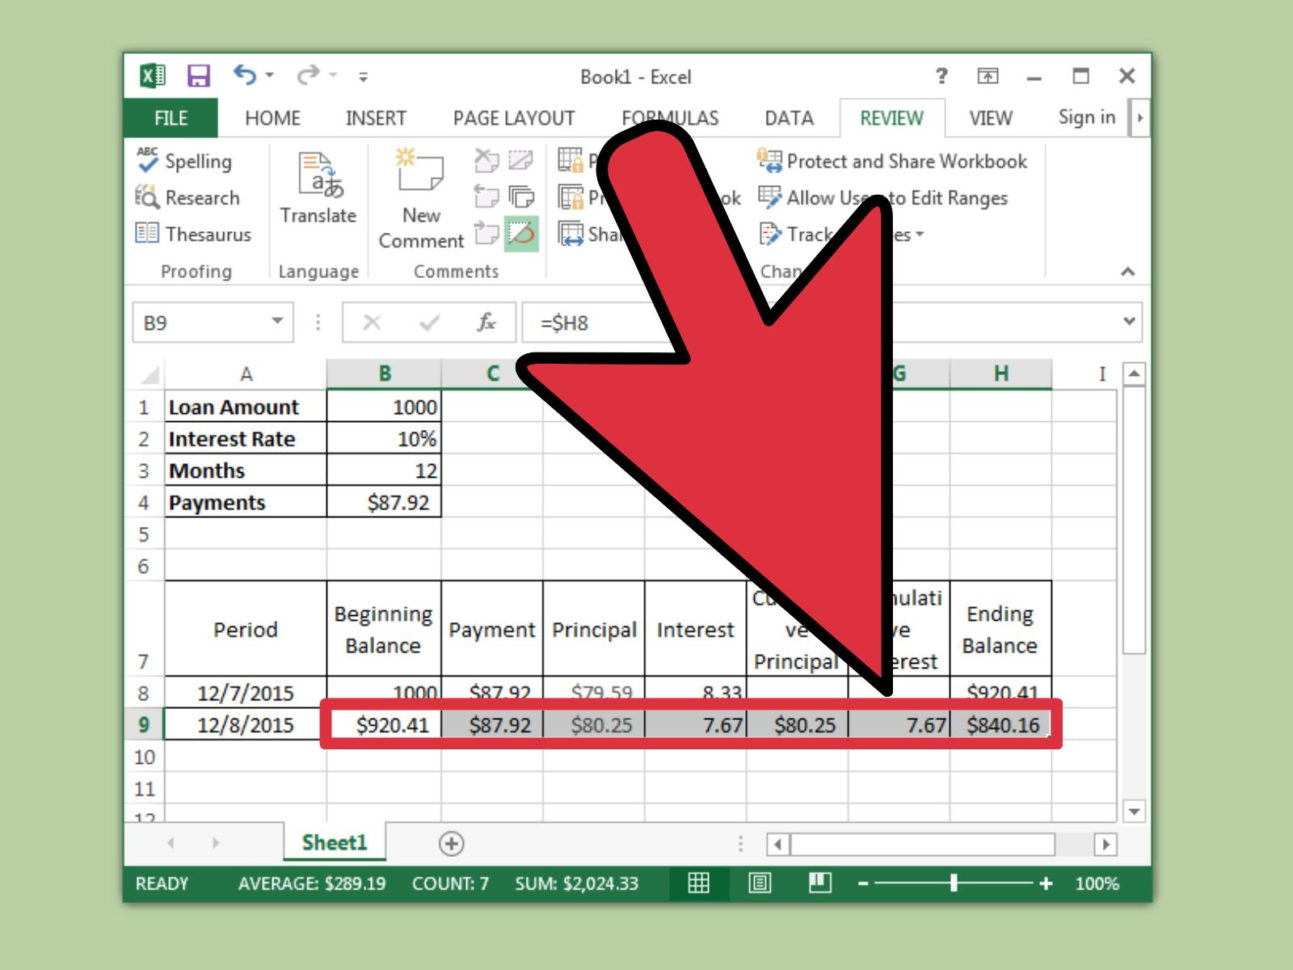 Mortgage Amortization Spreadsheet Excel Regarding How To Prepare Amortization Schedule In Excel: 10 Steps